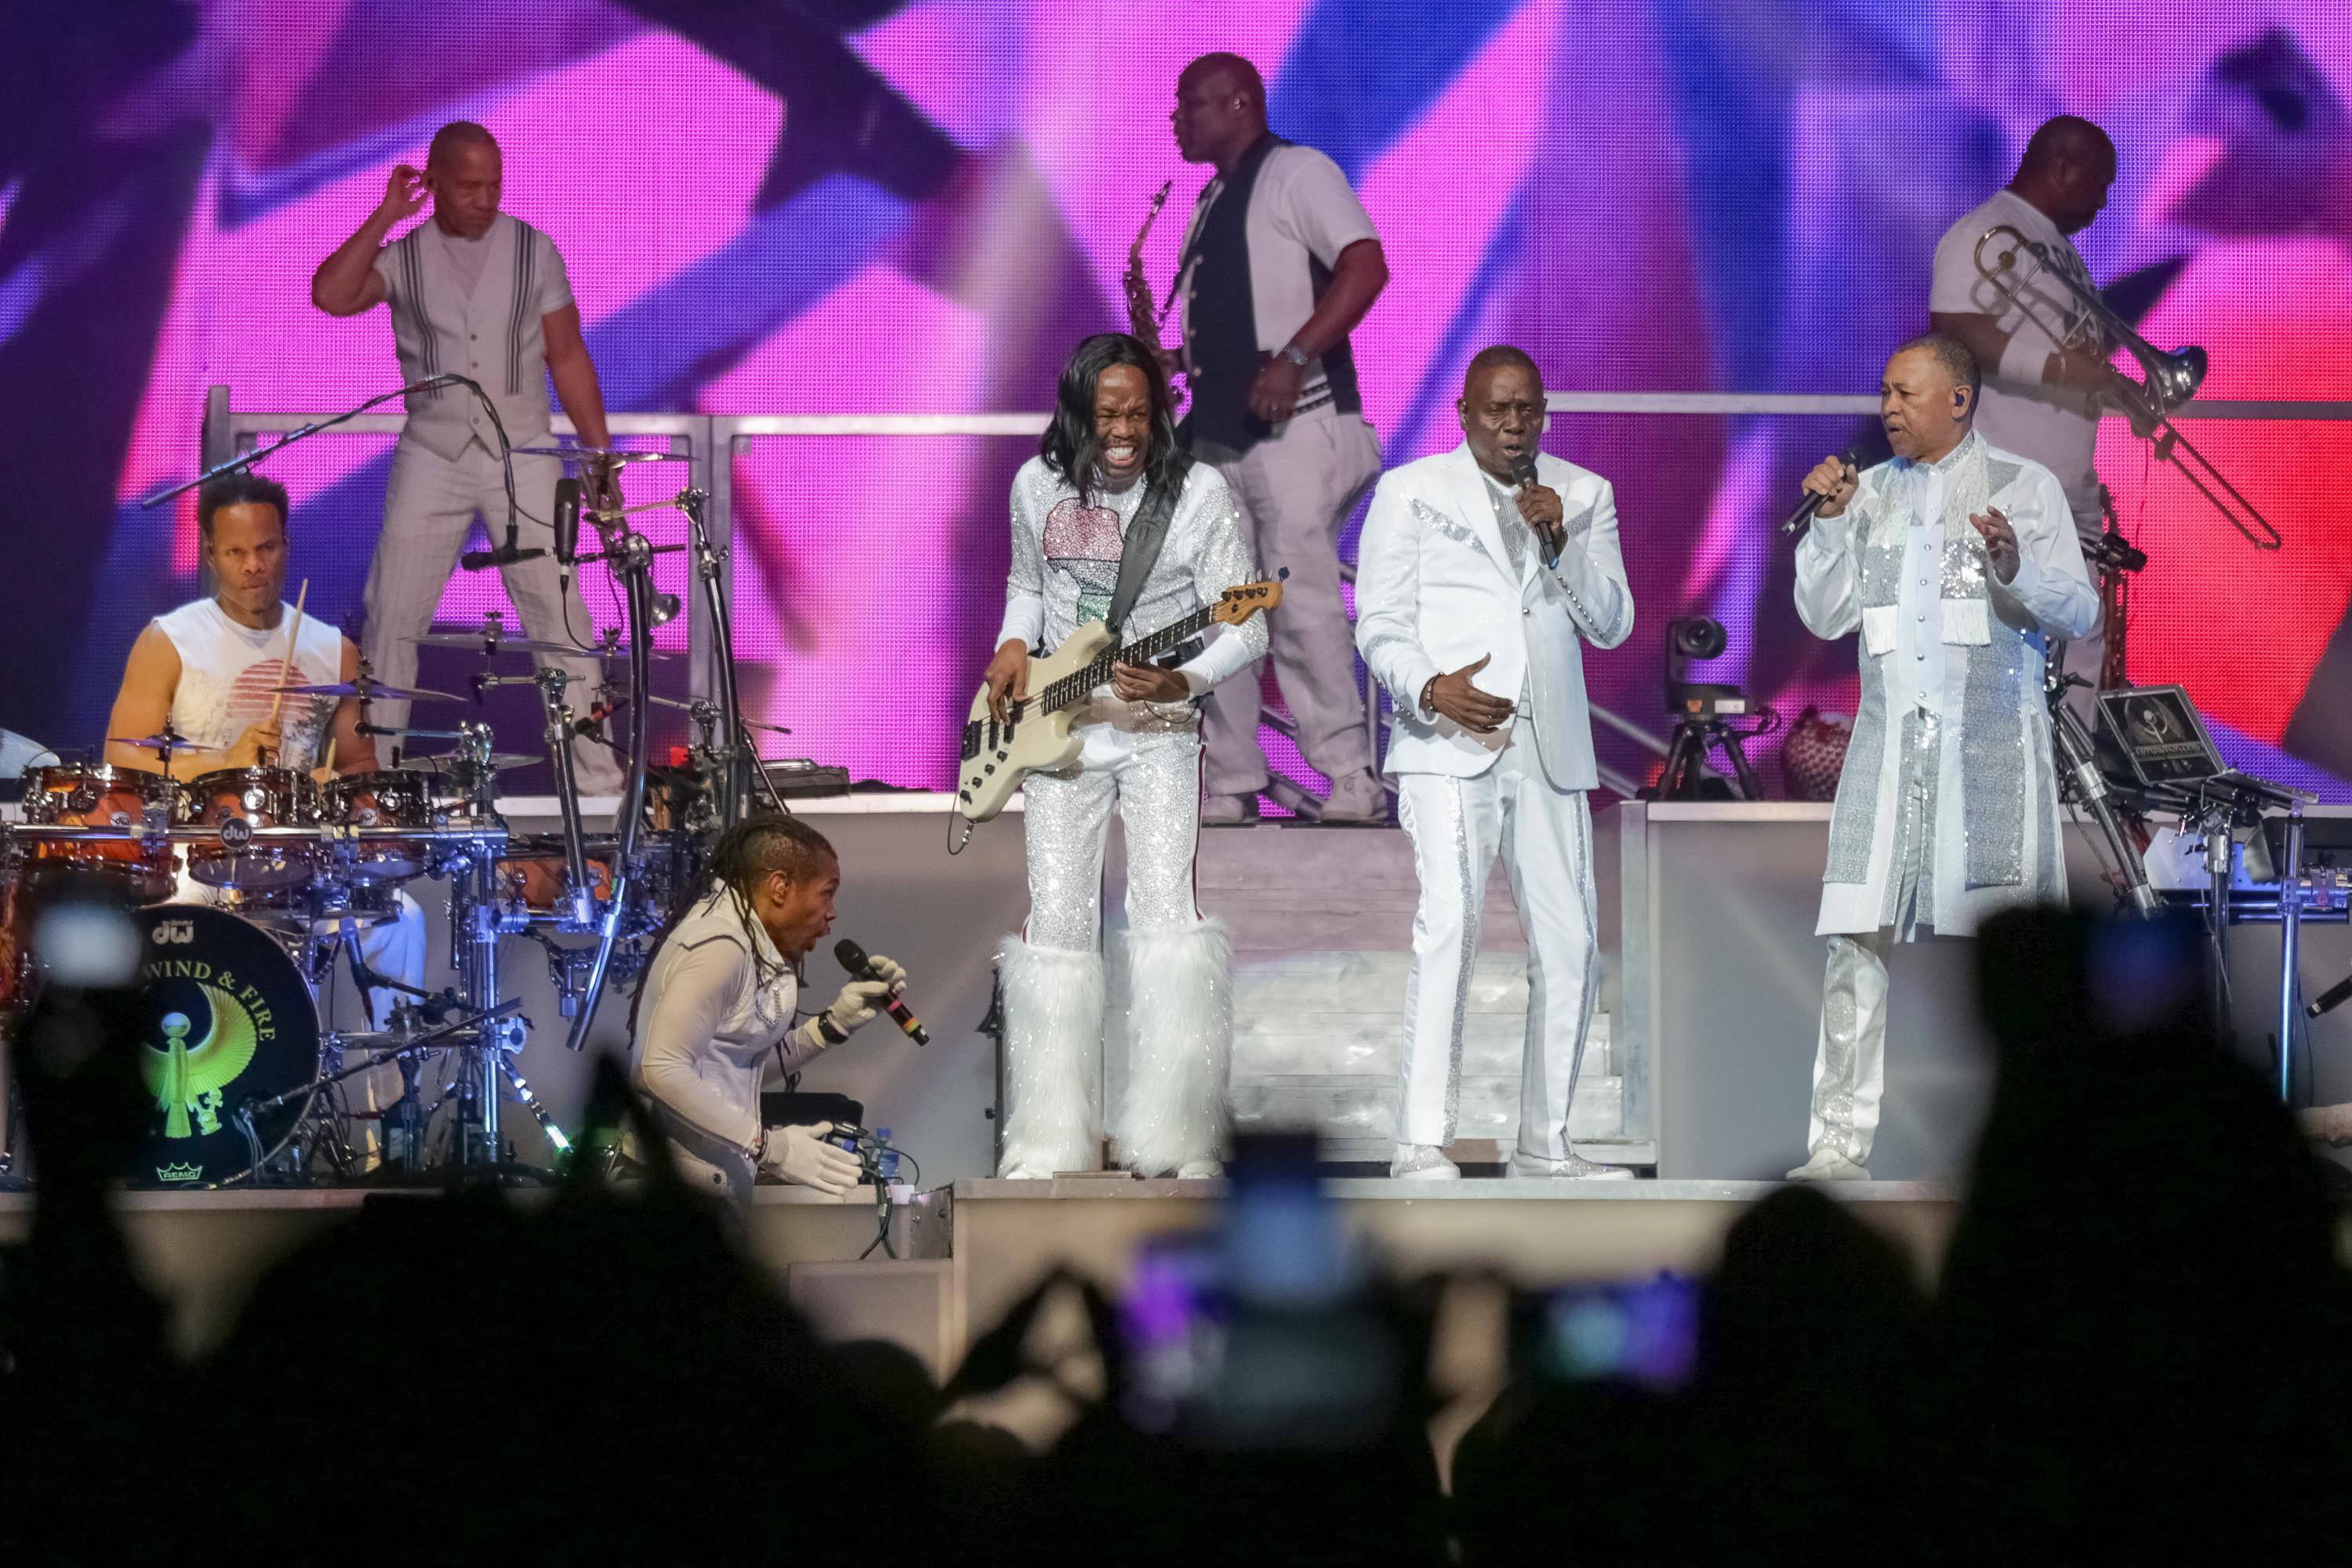 FILE - In this Aug. 9, 2017 file photo, Earth, Wind and Fire performs on stage at the Verizon Center on in Washington. Iconic actress Sally Field and foundational children's show Sesame Street top this year's class of Kennedy Center Honors recipients. Other chosen to receive the award for lifetime achievement in the arts include singer Linda Ronstadt, conductor Michael Tilson Thomas and the R&B group Earth, Wind and Fire.(Photo by Brent N. Clarke/Invision/AP)